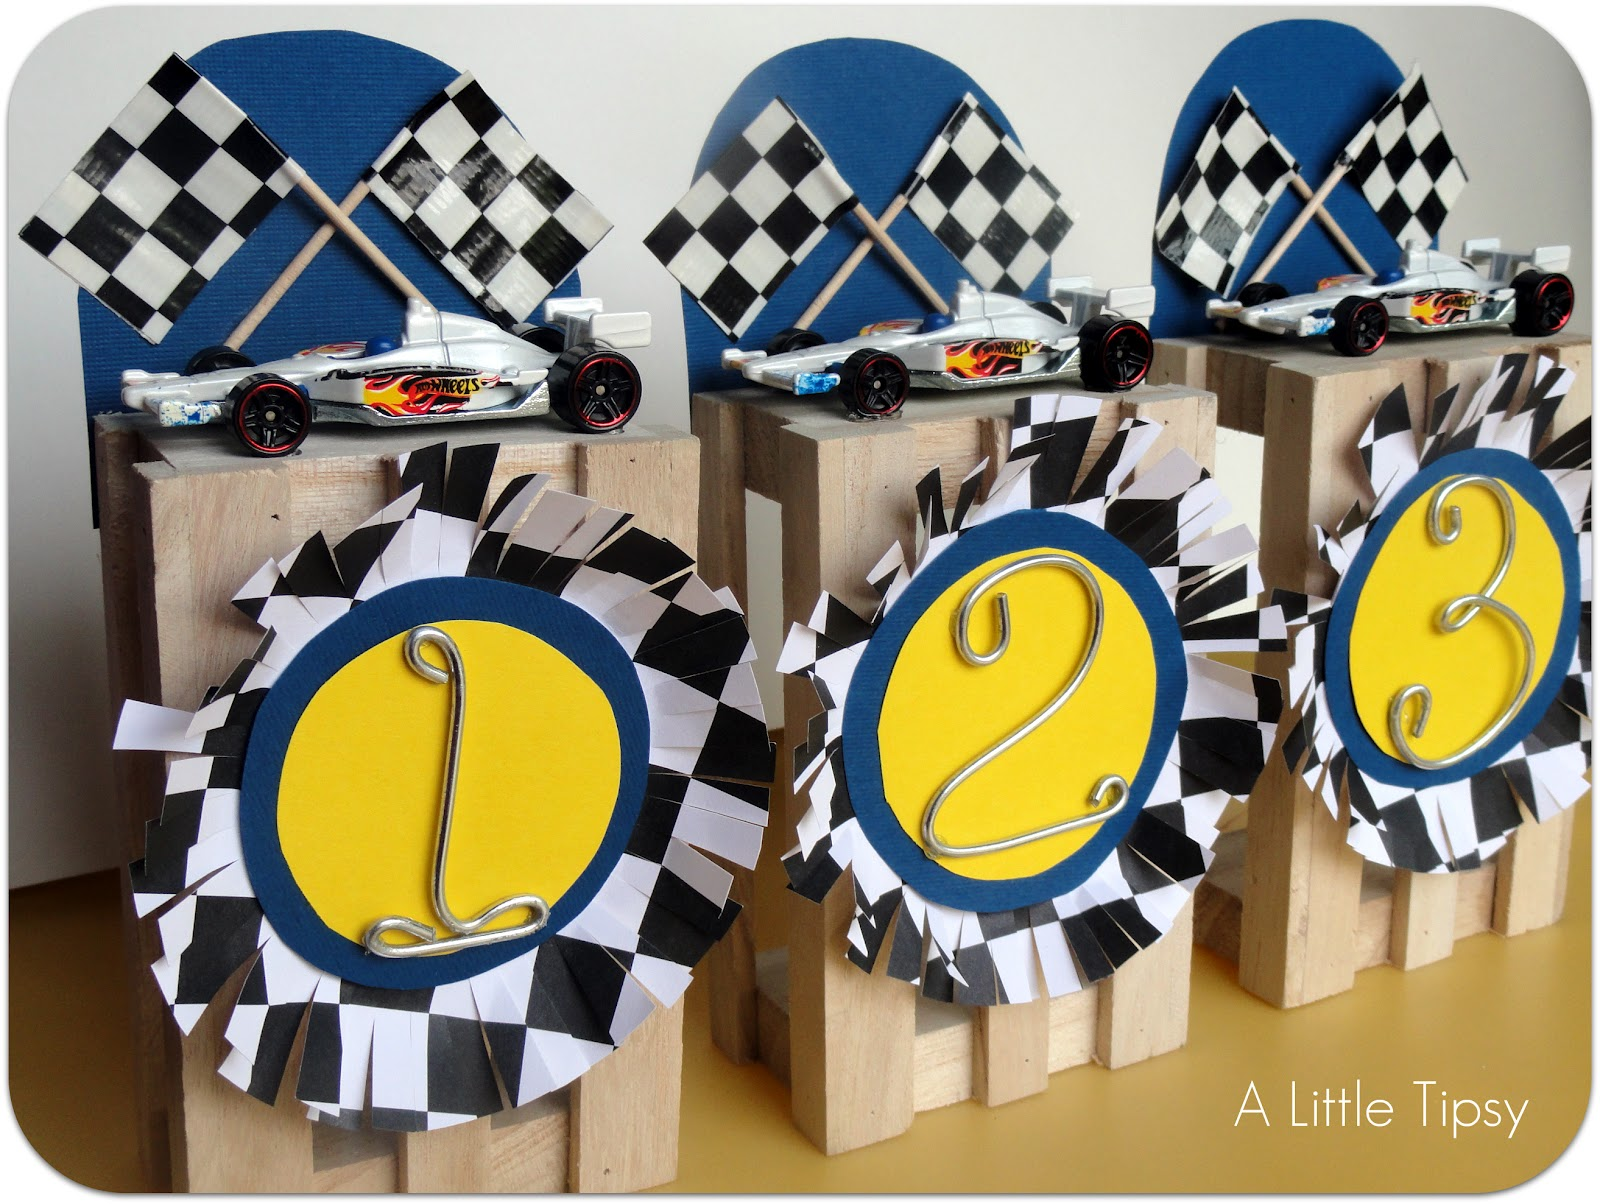 Nenny Beginner Cub Scout Wood Projects Designs